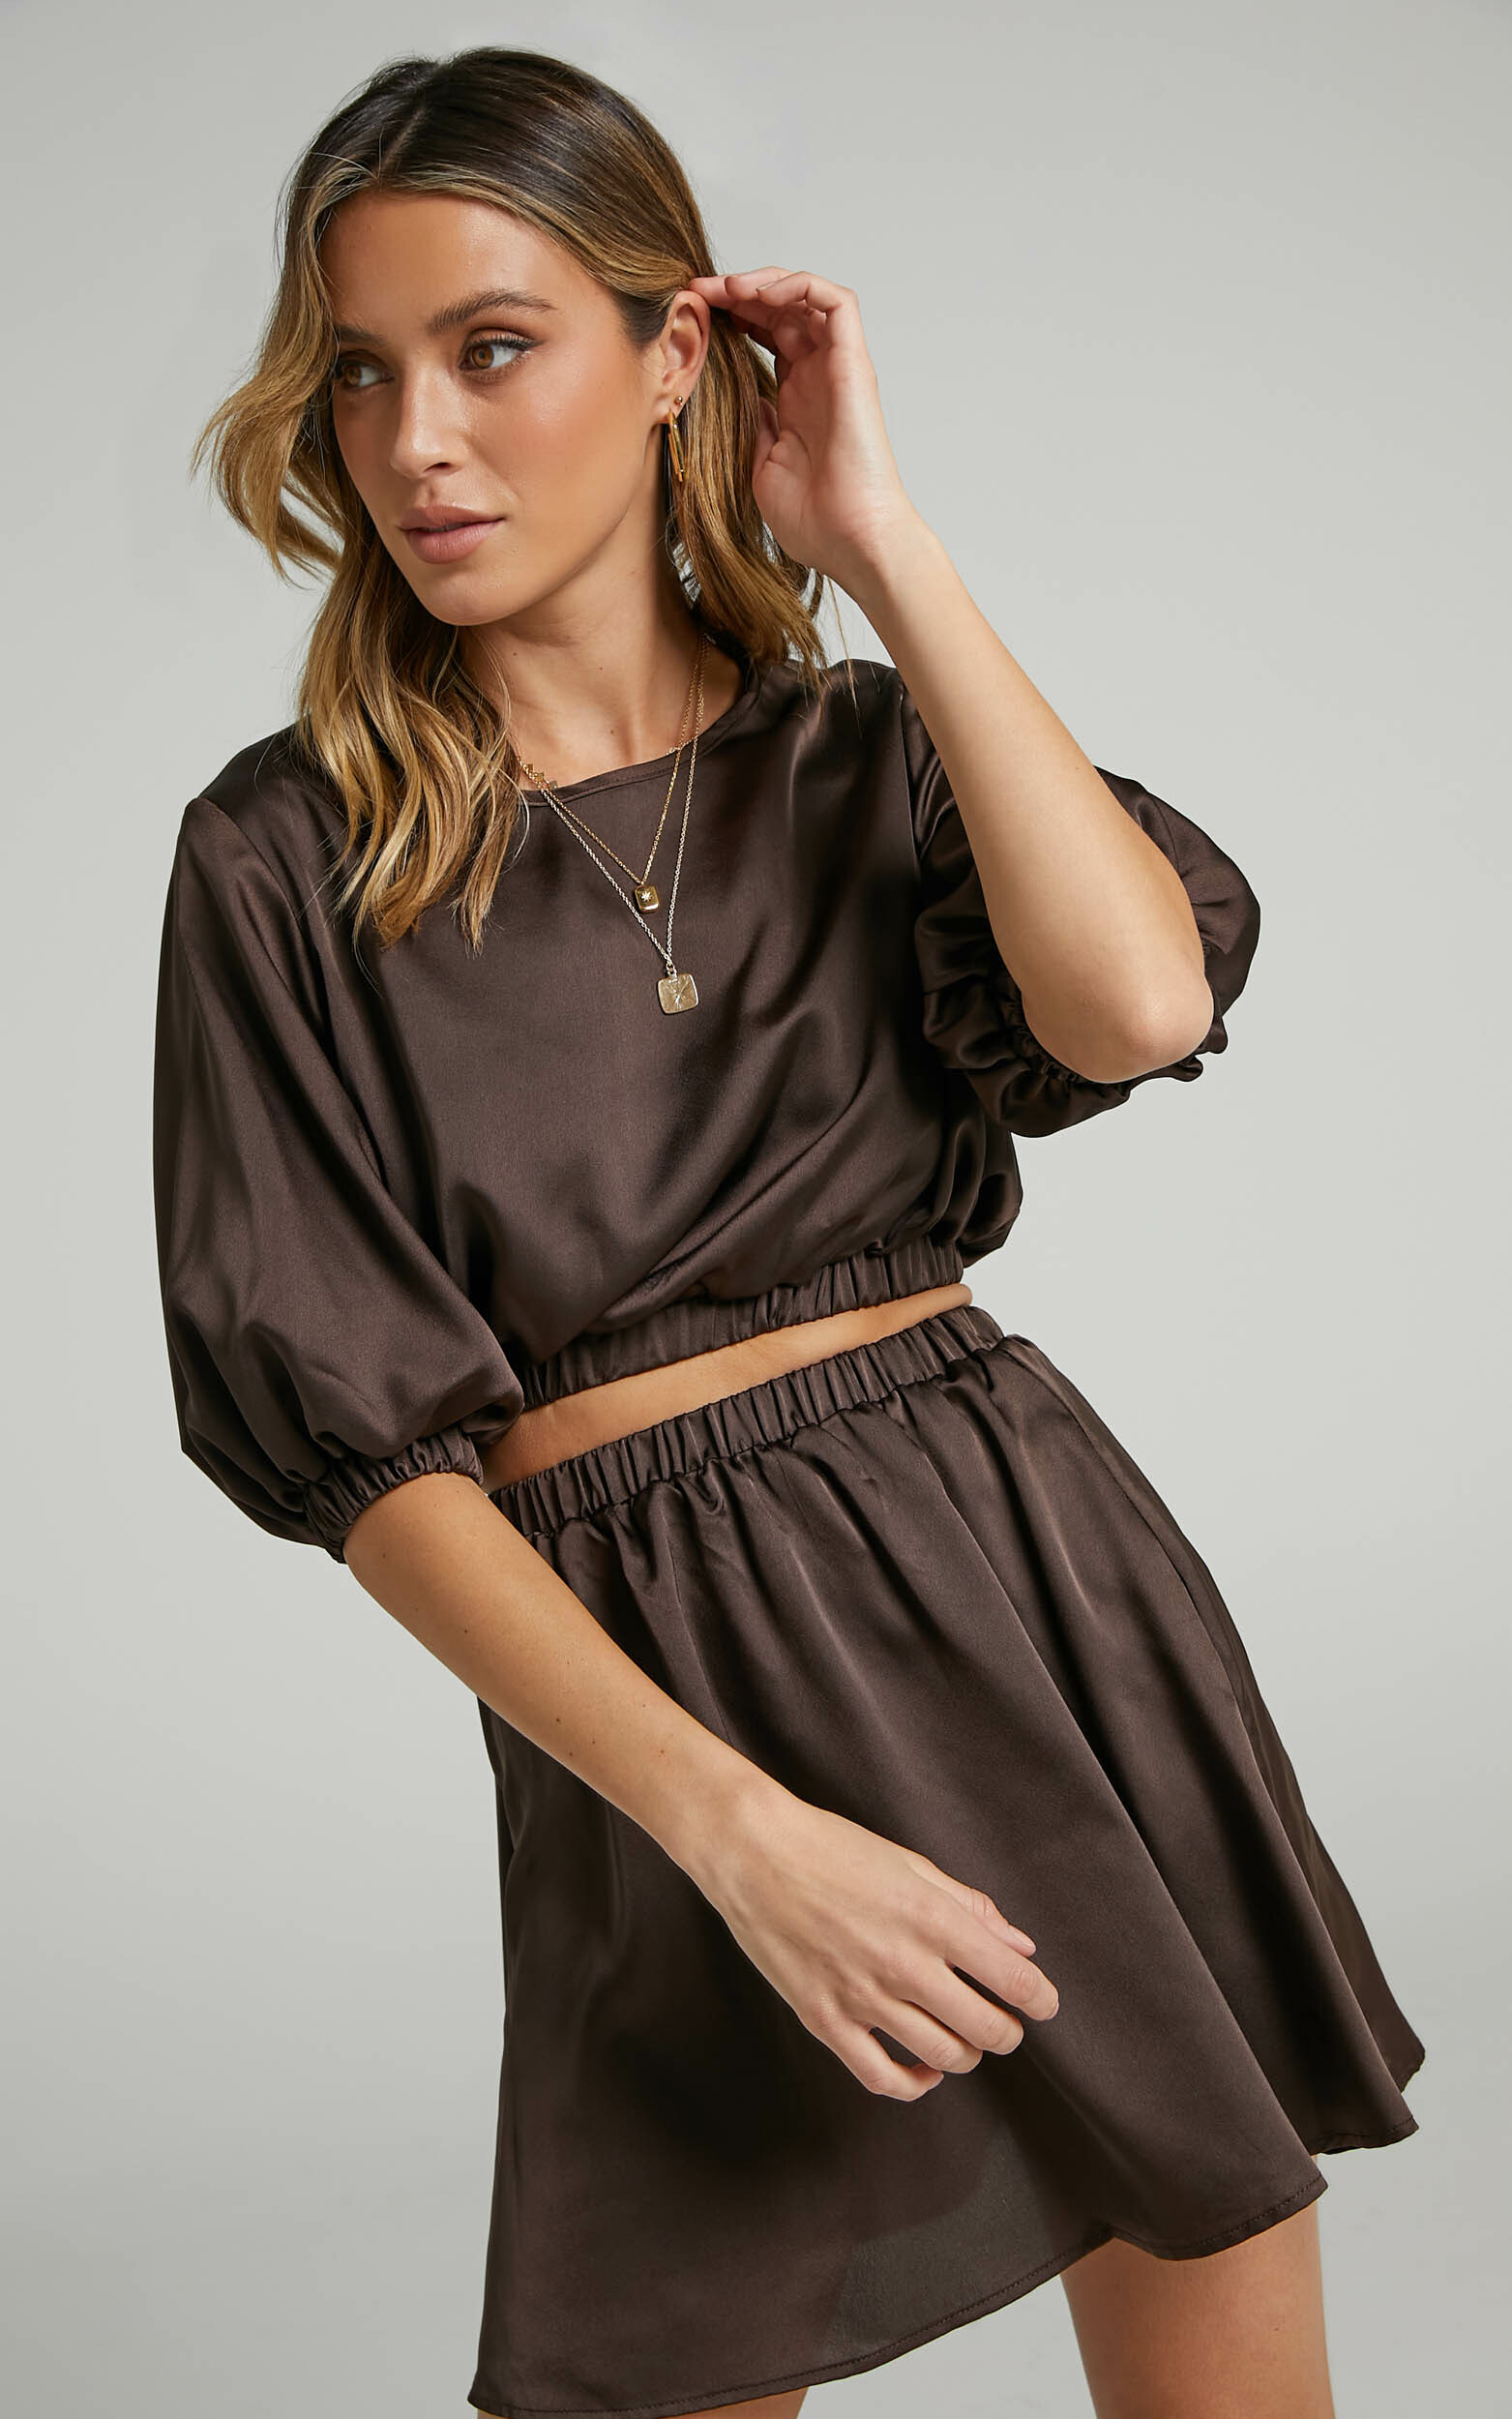 Alyza Mini Two Piece Set in Chocolate - 06, BRN1, hi-res image number null